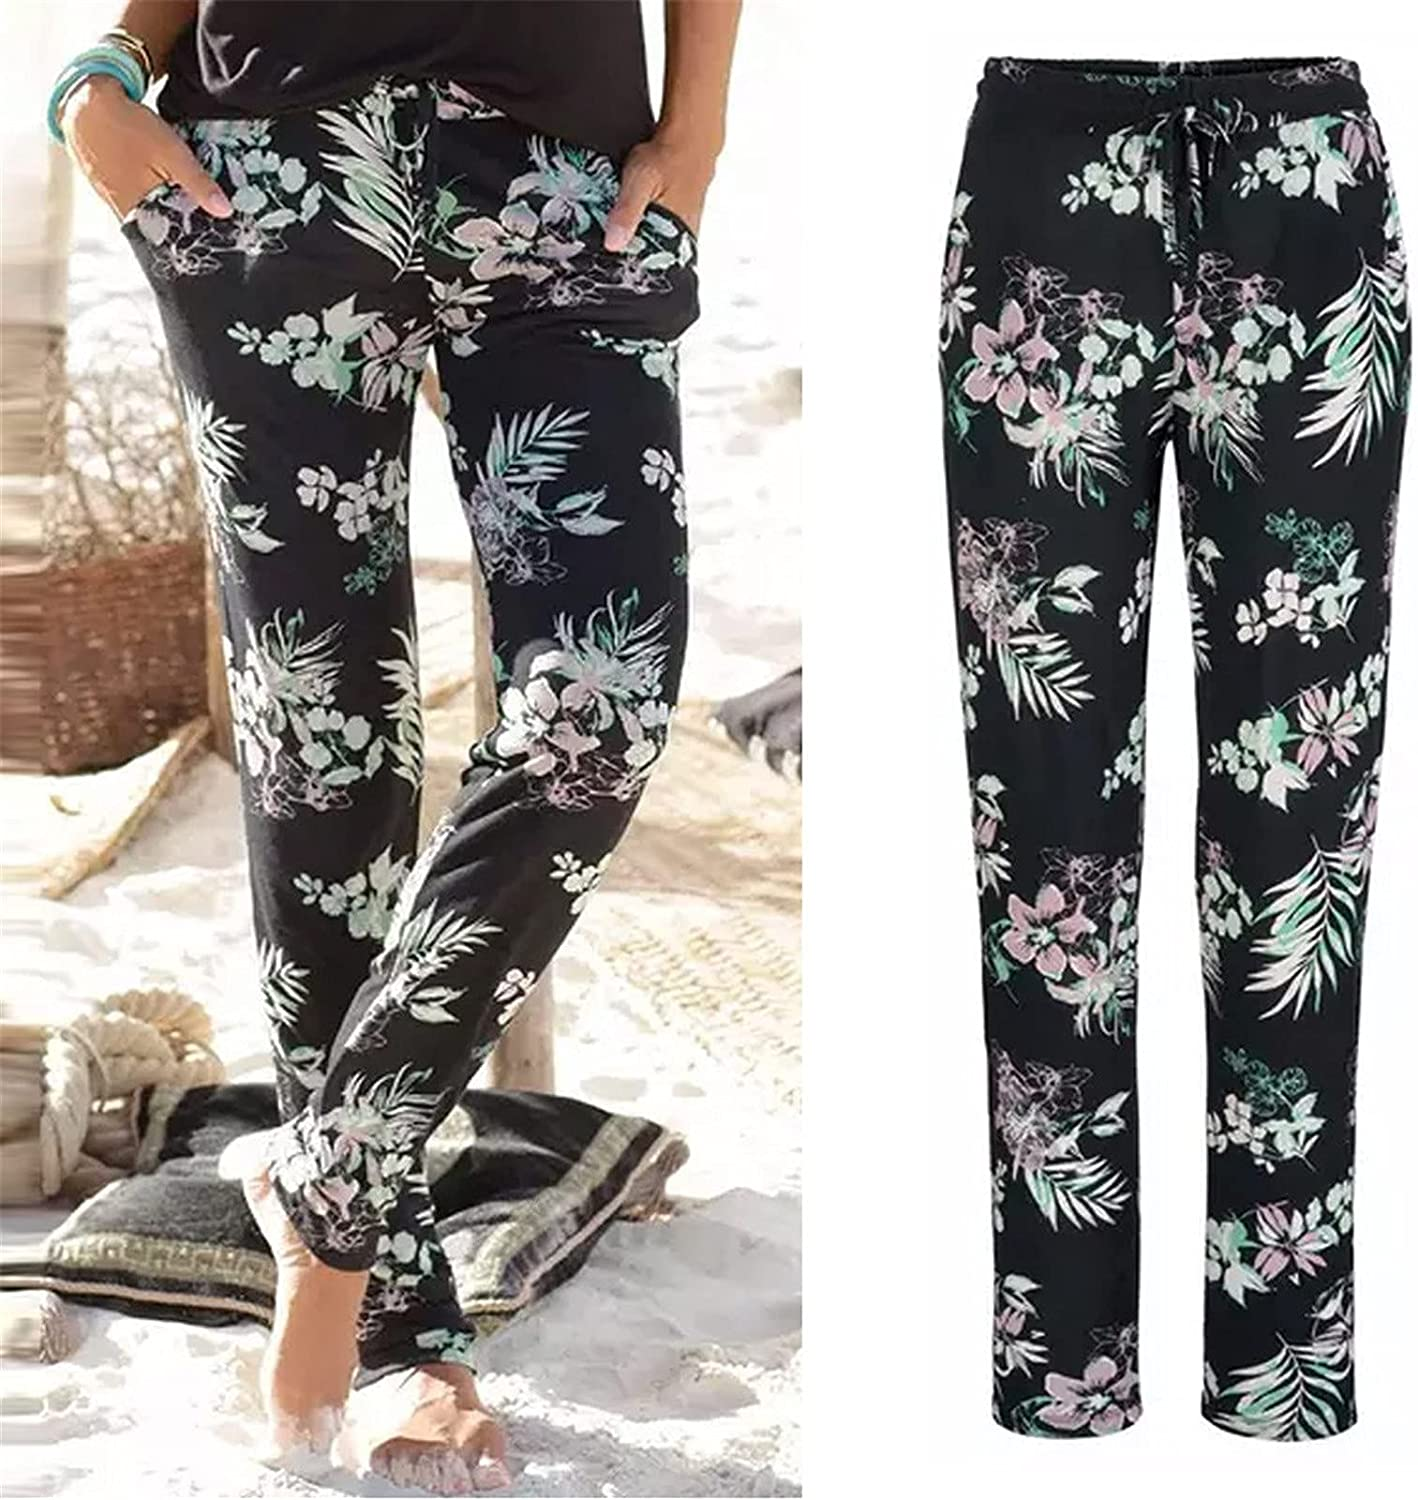 Yiihappy Little Story Women Trousers for Work,Women High Waist Printing Easy Trousers Long Pants